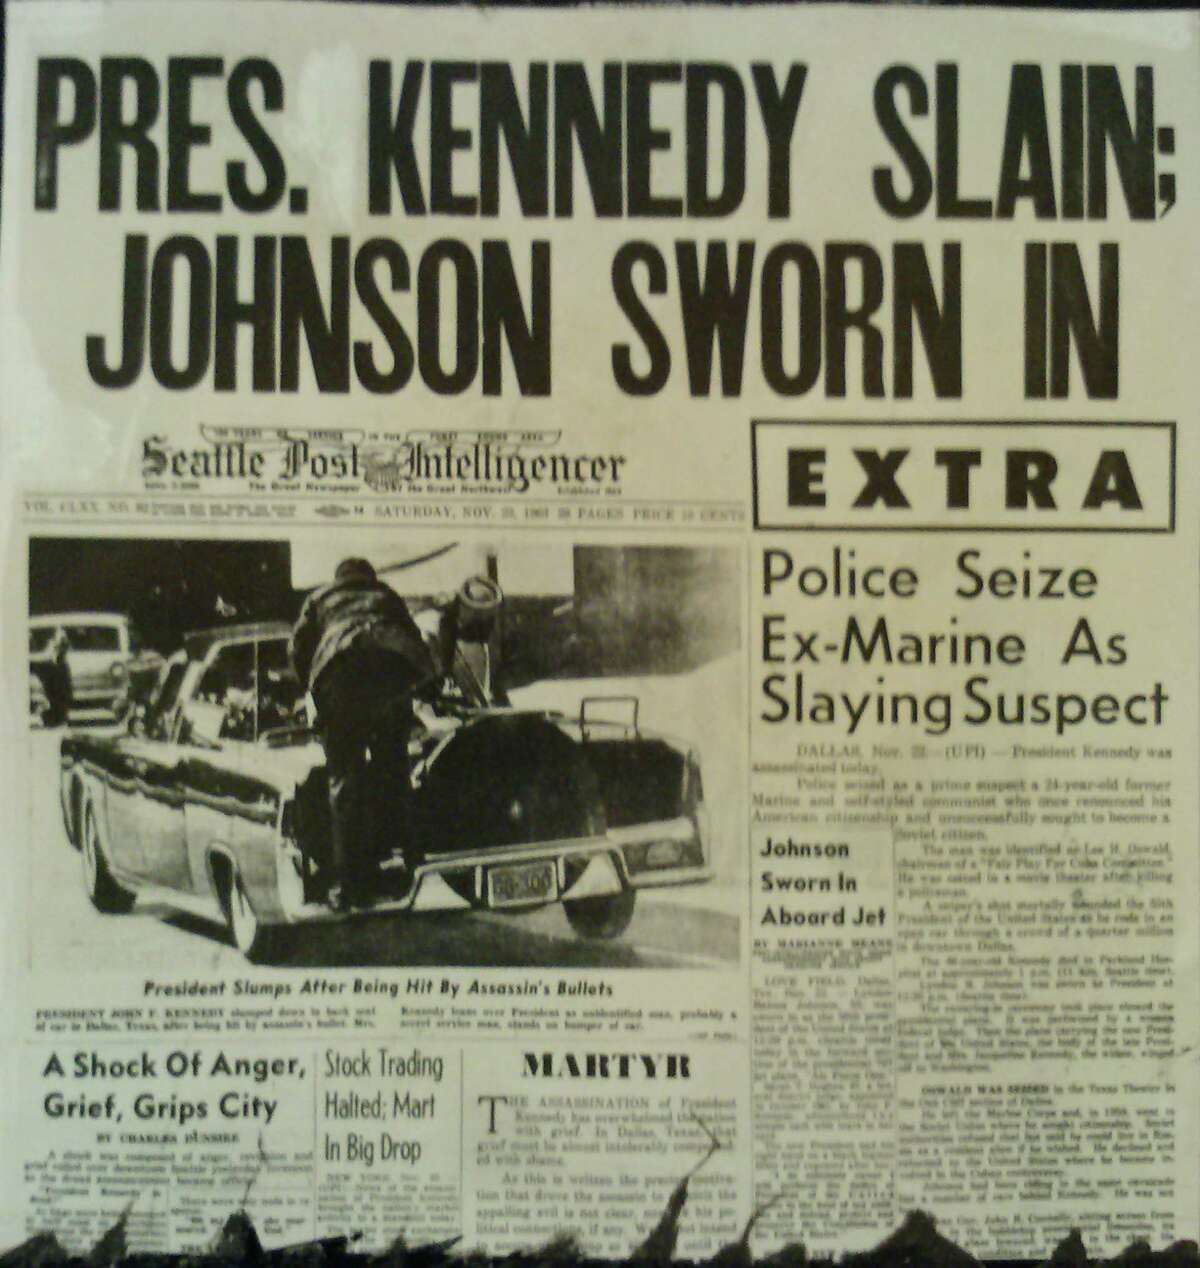 This extra edition of the P-I is dated Nov. 22, 1963, the day of Kennedy's assassination.